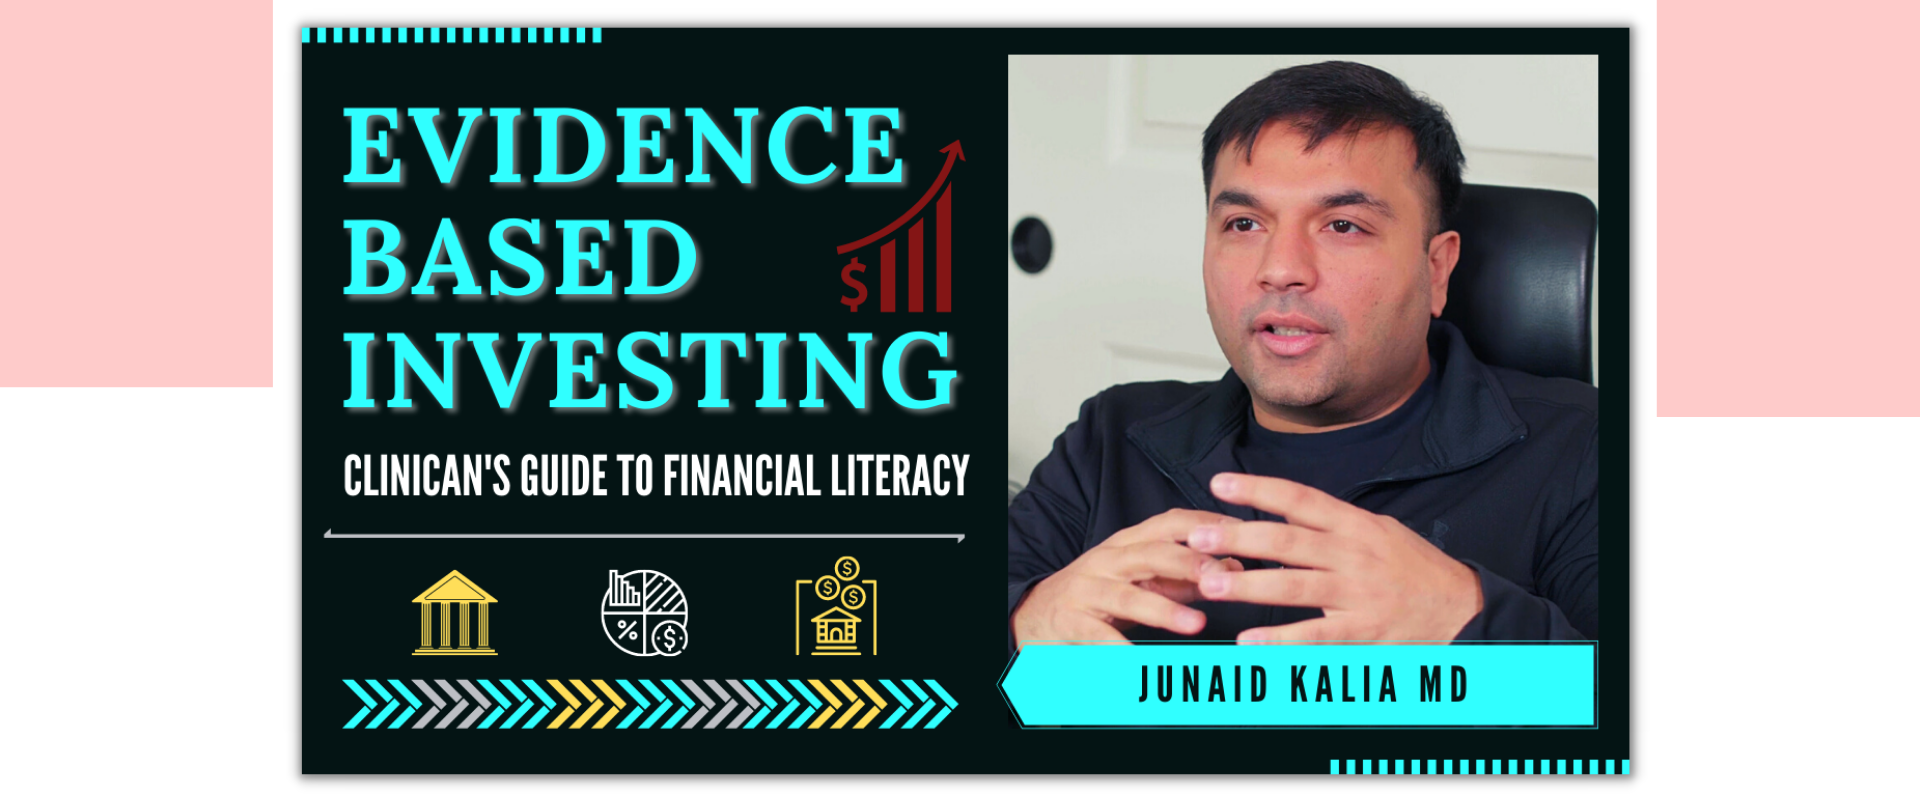 Evidence Based INVESTING - Clinician's Guide to Financial Literacy